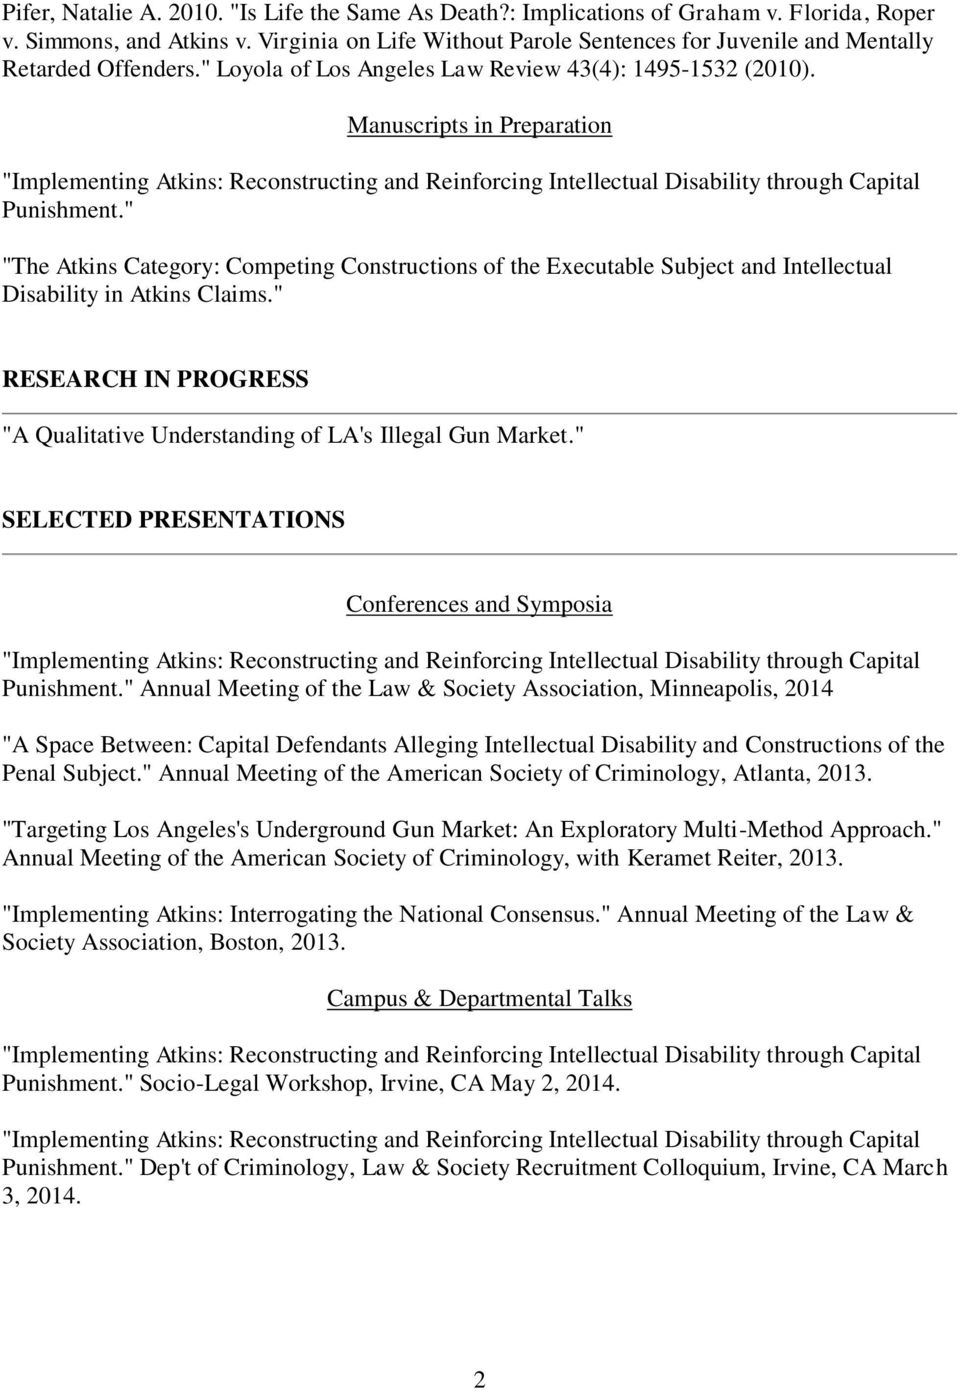 """ ""The Atkins Category: Competing Constructions of the Executable Subject and Intellectual Disability in Atkins Claims."" RESEARCH IN PROGRESS ""A Qualitative Understanding of LA's Illegal Gun Market."